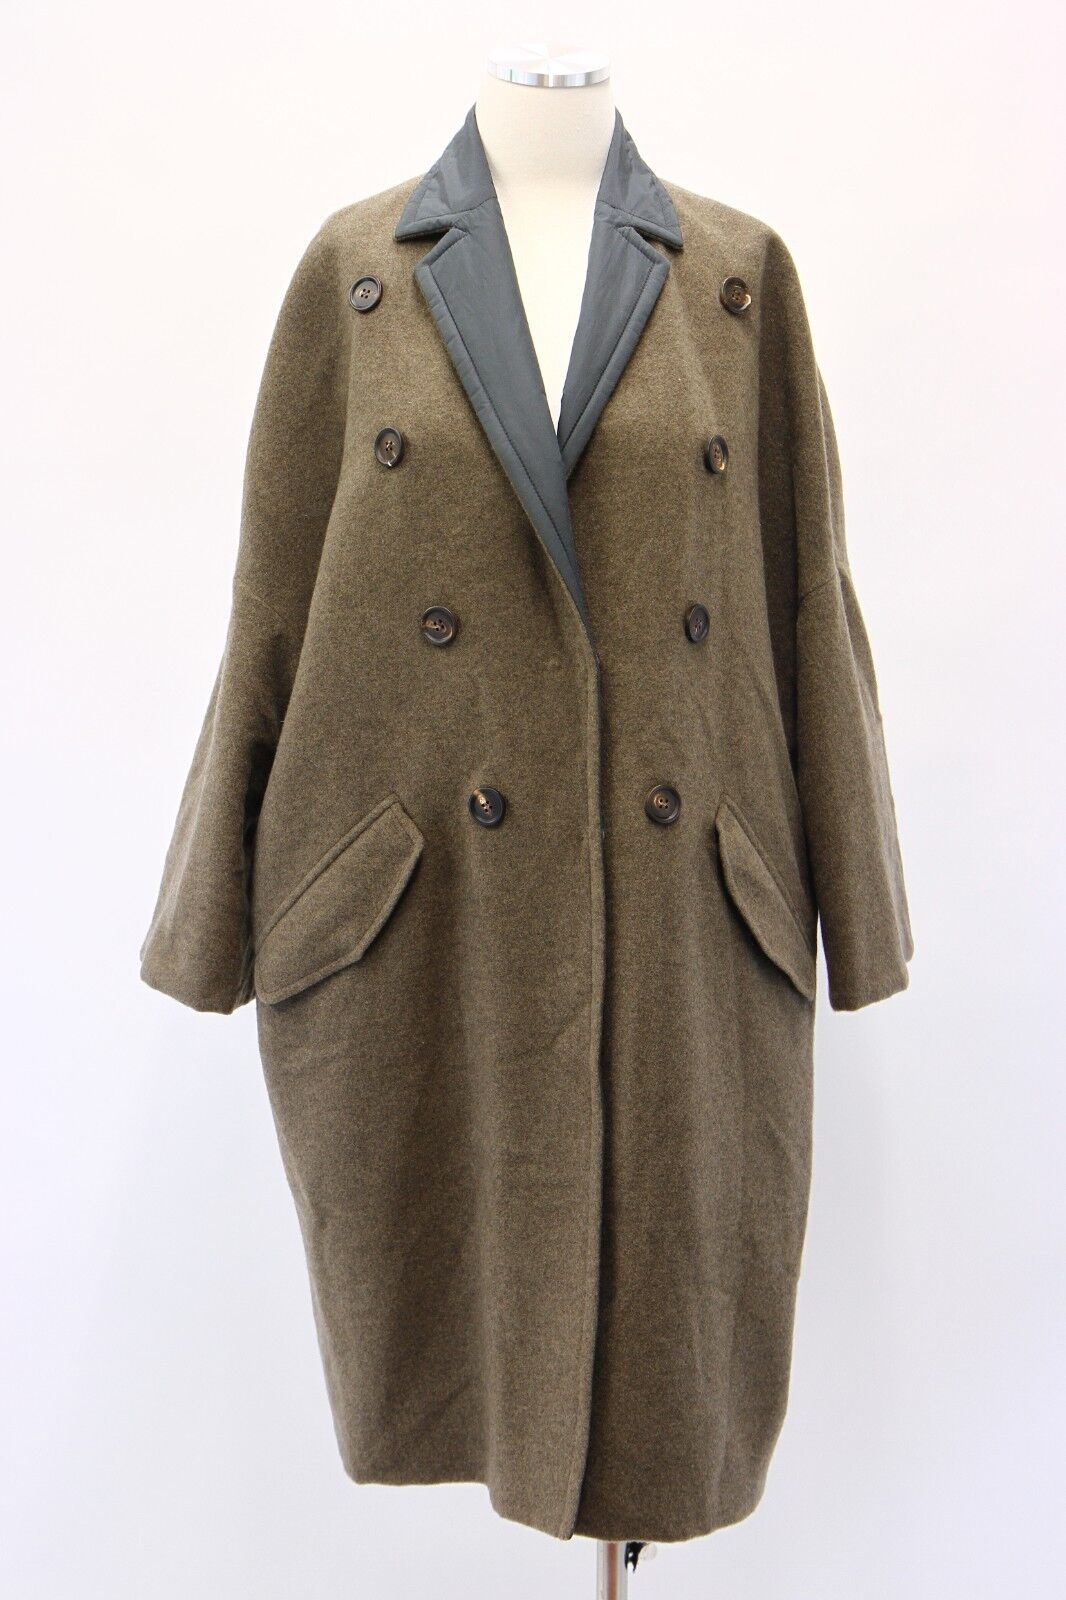 NWT 8595 Brunello Cucinelli Women's 100% Cashmere Reversible DB Overcoat 42 A181